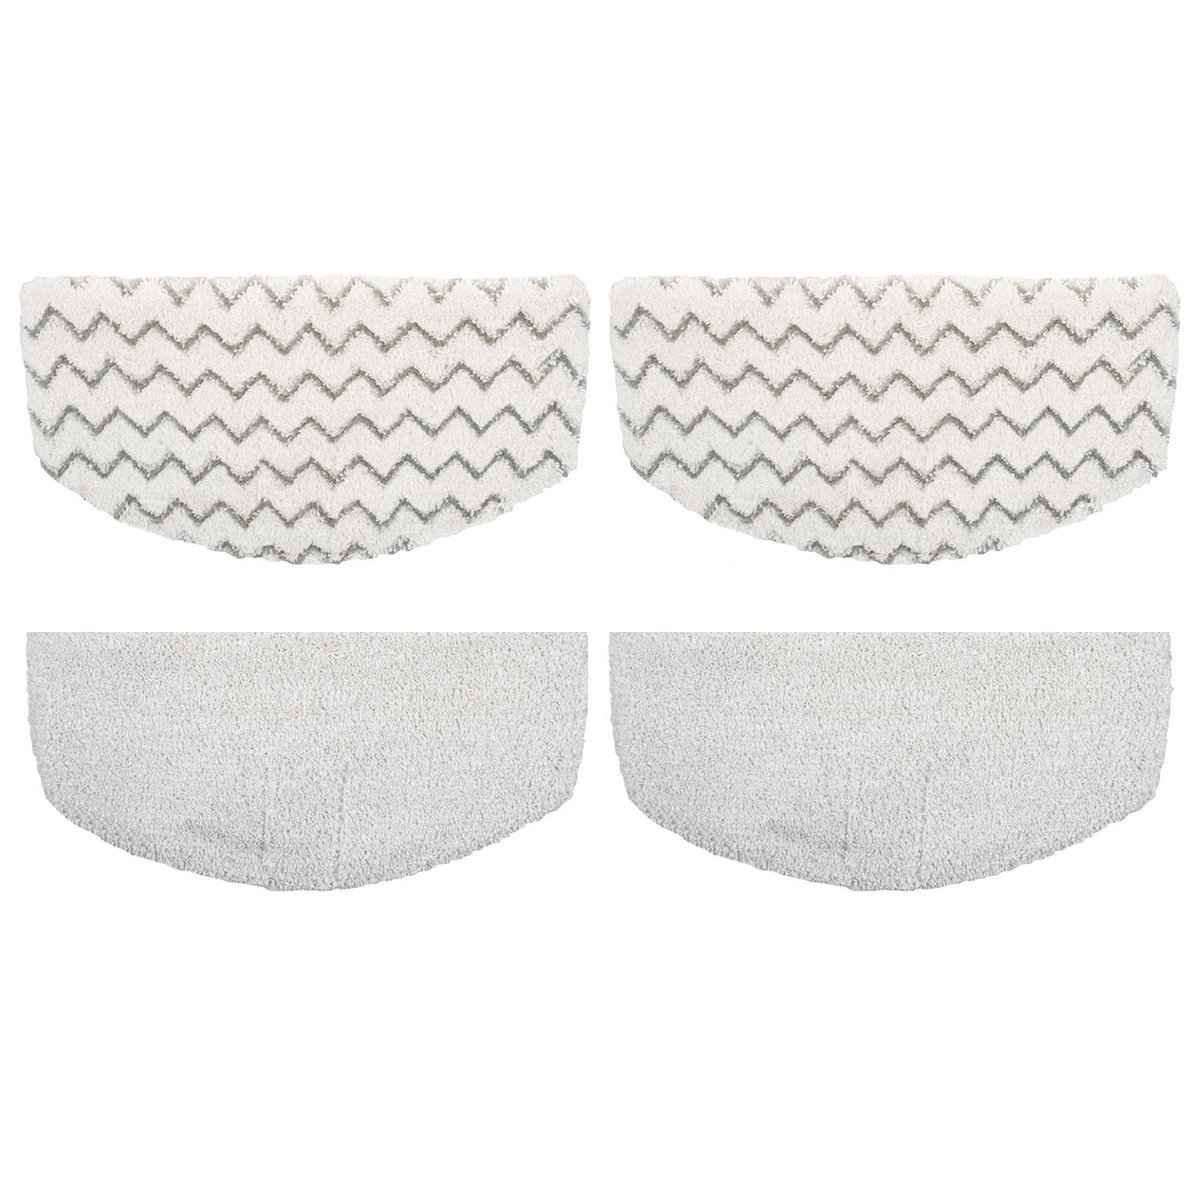 F Flammi 4 Pack Steam Mop Pads Replacement for Bissell Powerfresh Steam Mop 1940 1440 1544 Series, Model 19402 19404 19408 1940A 1940Q 1940T 1940W